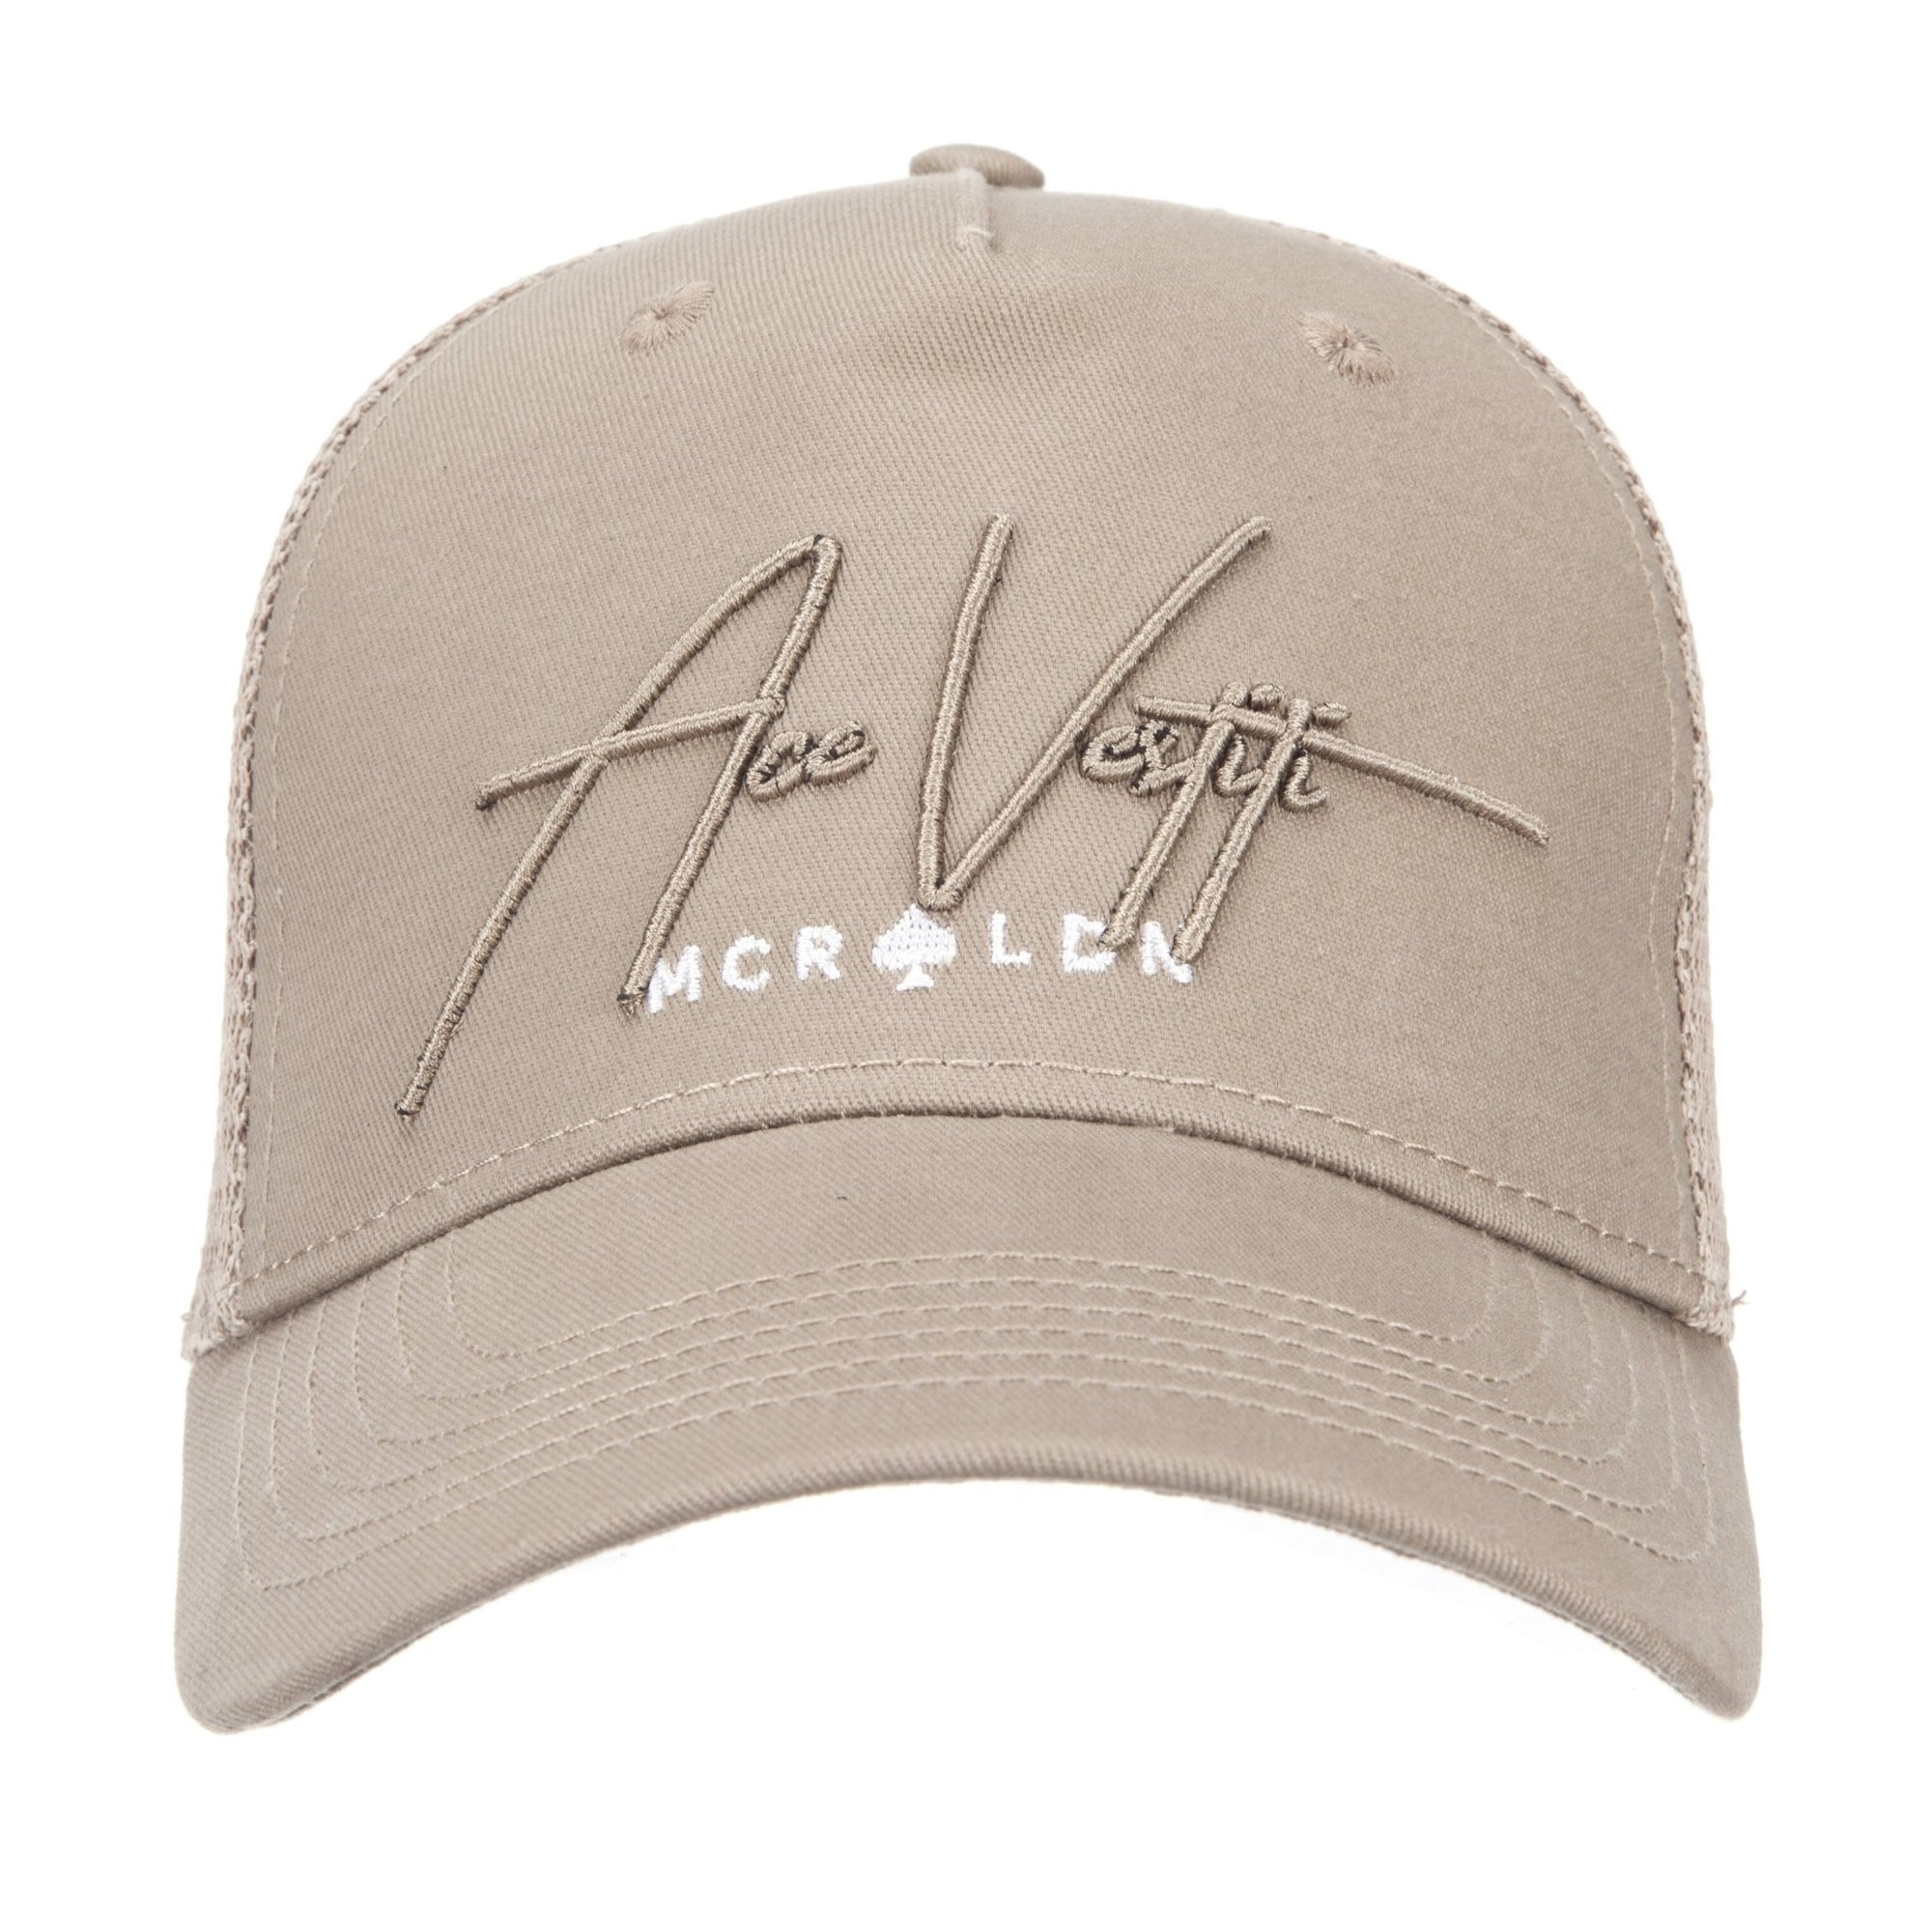 Golden Sand Signature Mesh Trucker - ACE VESTITI